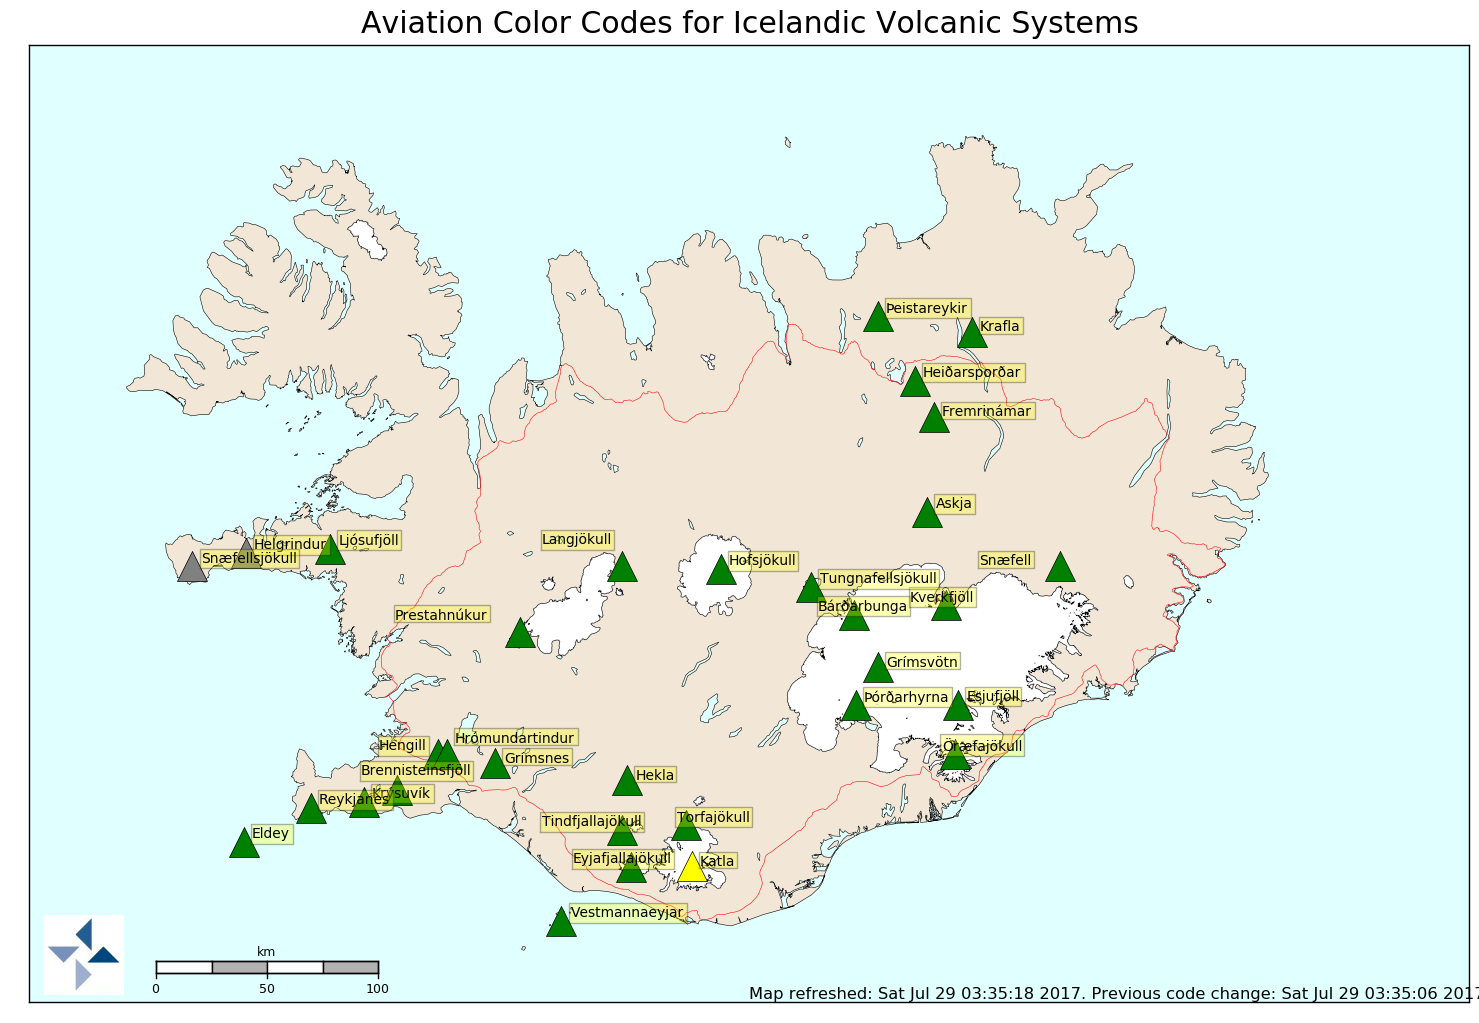 katla volcano alert level yellow, katla volcano alert level yellow map, The alert level of Katla volcano in Iceland has been risen to YELLOW after the largest quake in years has hit the volcano on July 26 2017